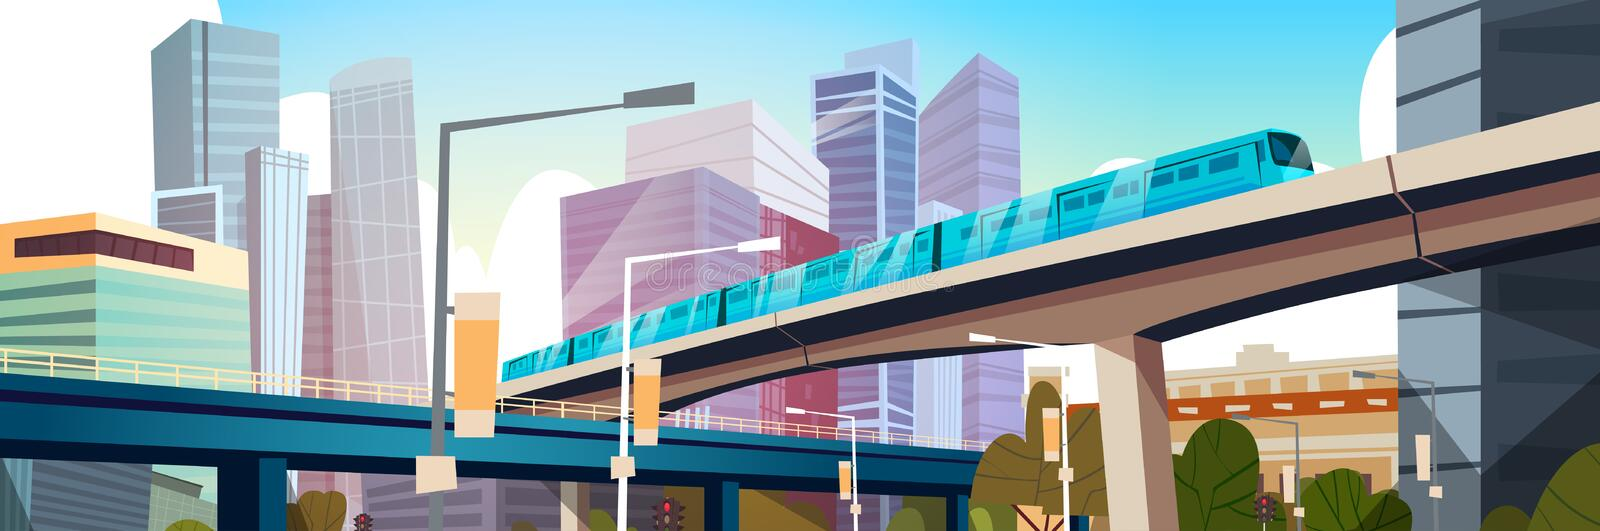 Modern Urban Panorama With High Skyscrapers And Subway City Background Horizontal Banner. Flat Vector Illustration royalty free illustration